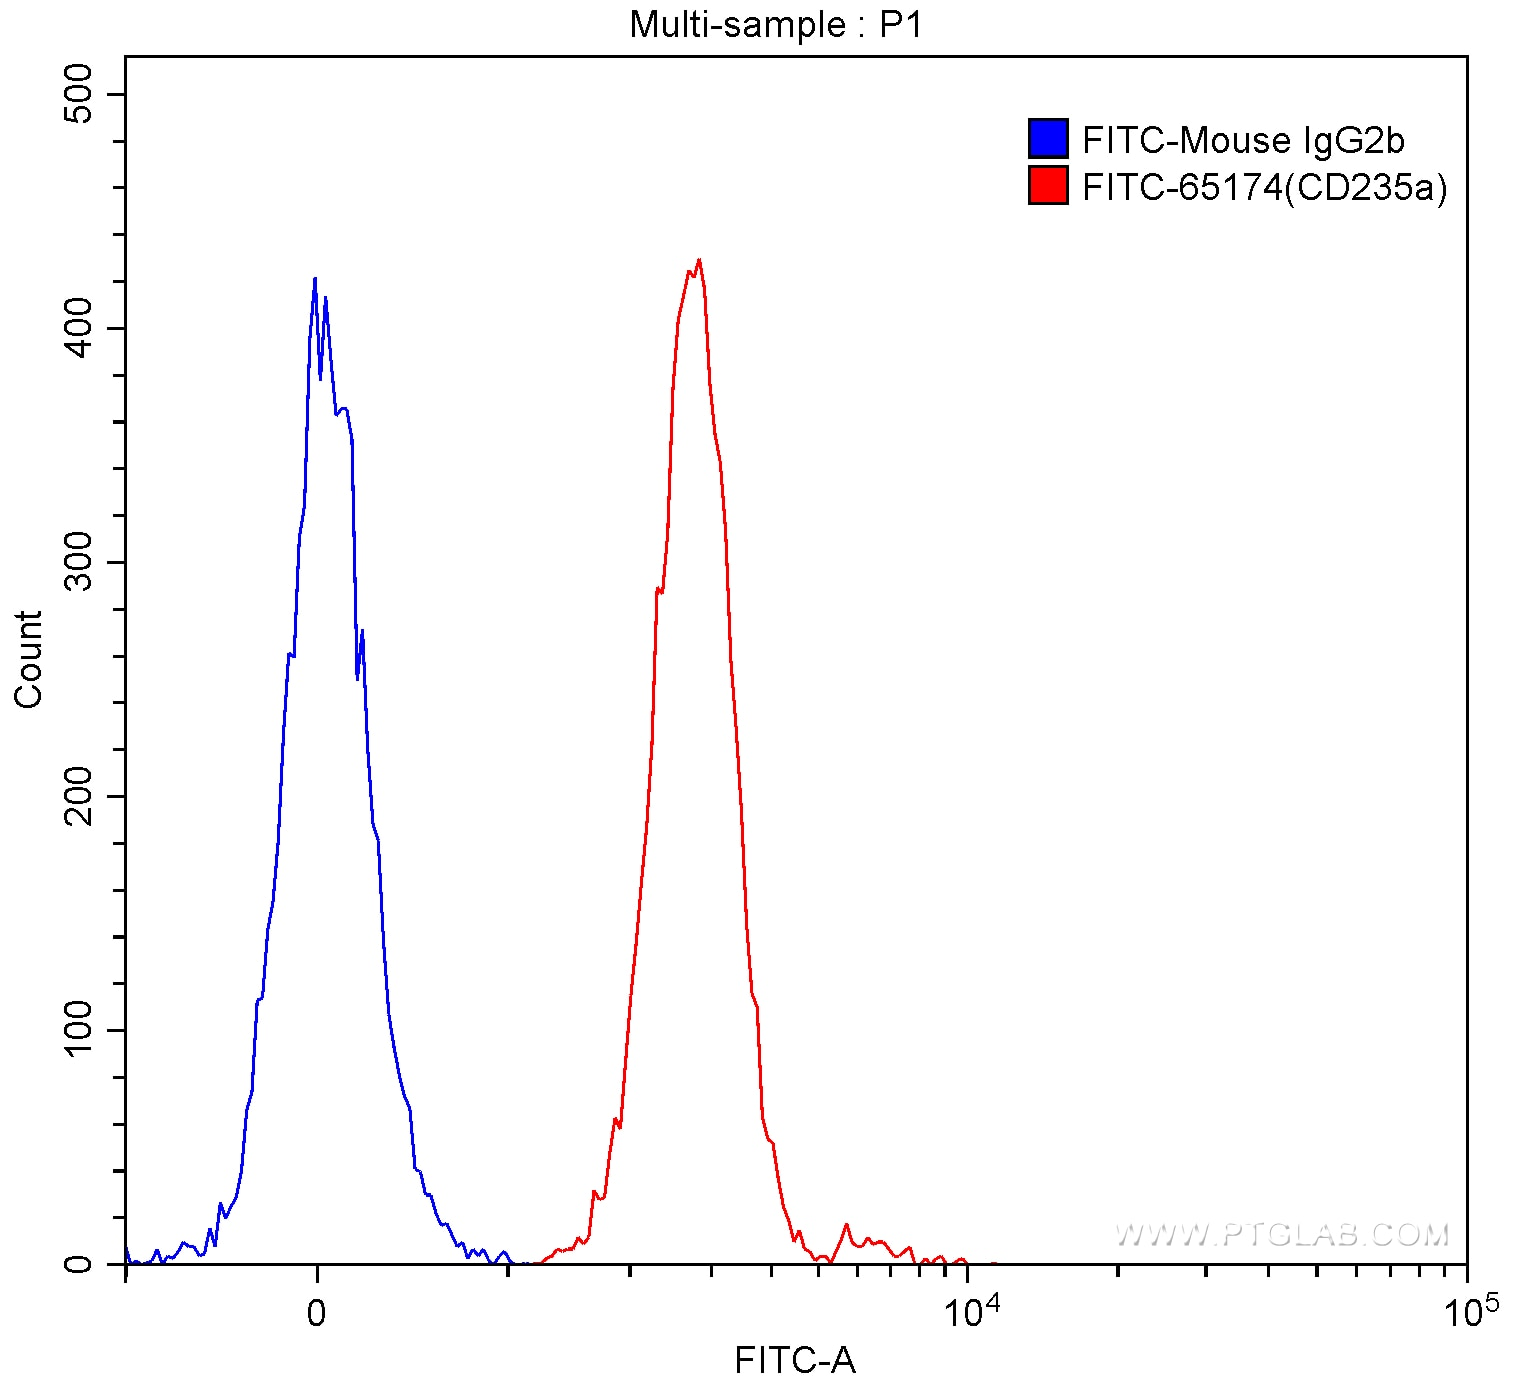 FC experiment of human red blood cells using FITC-65174